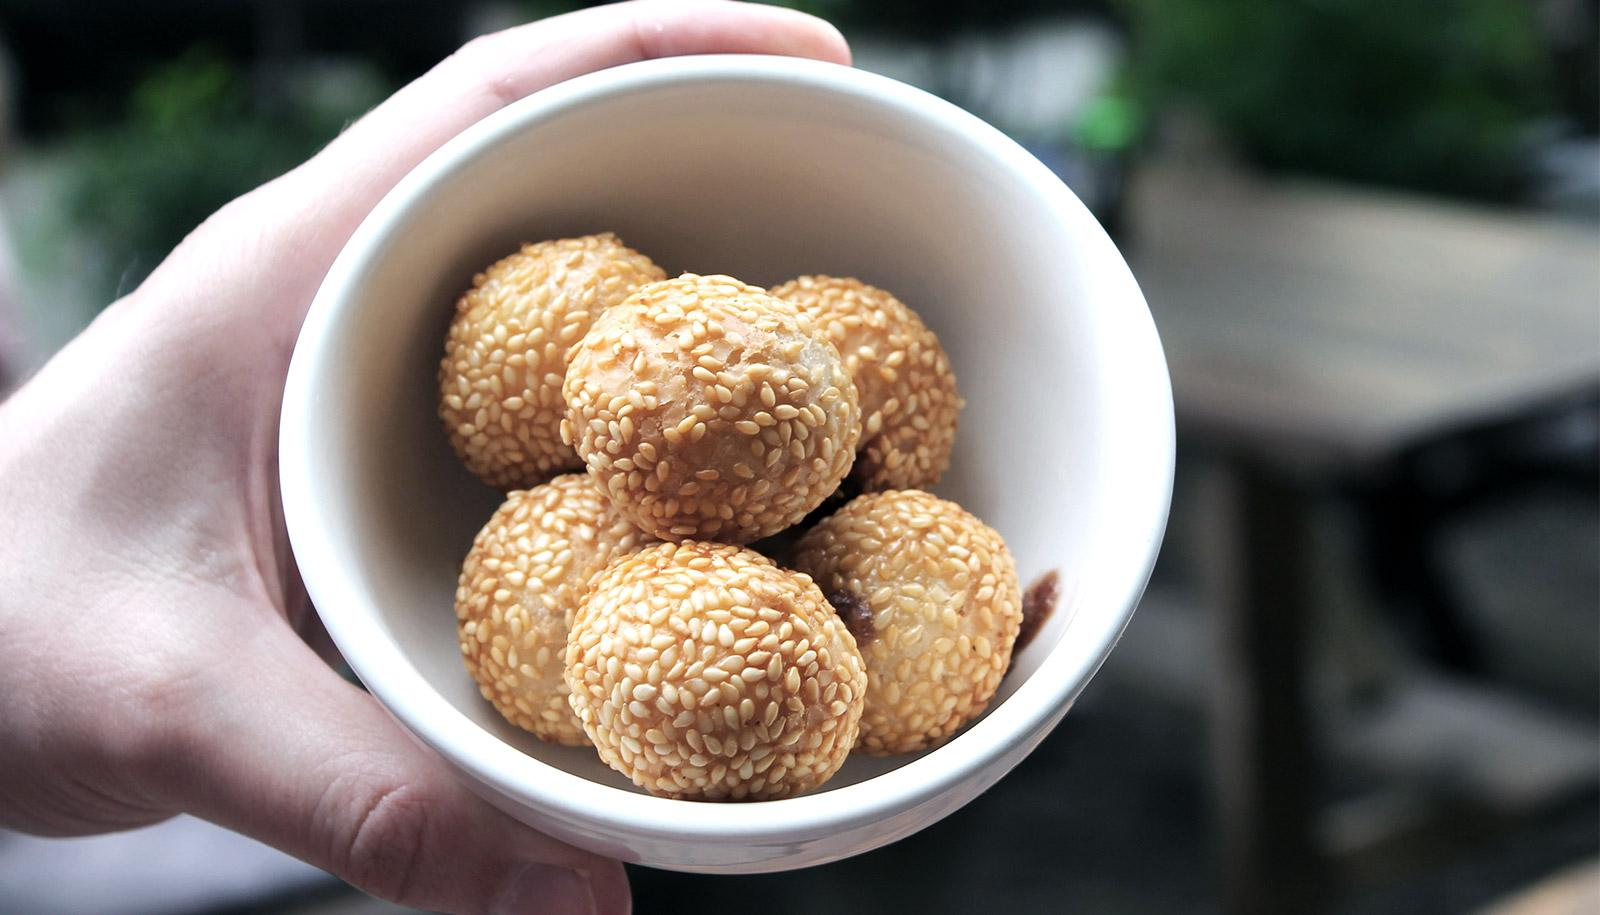 The image shows sesame balls in a white bowl. (sesame allergy concept)